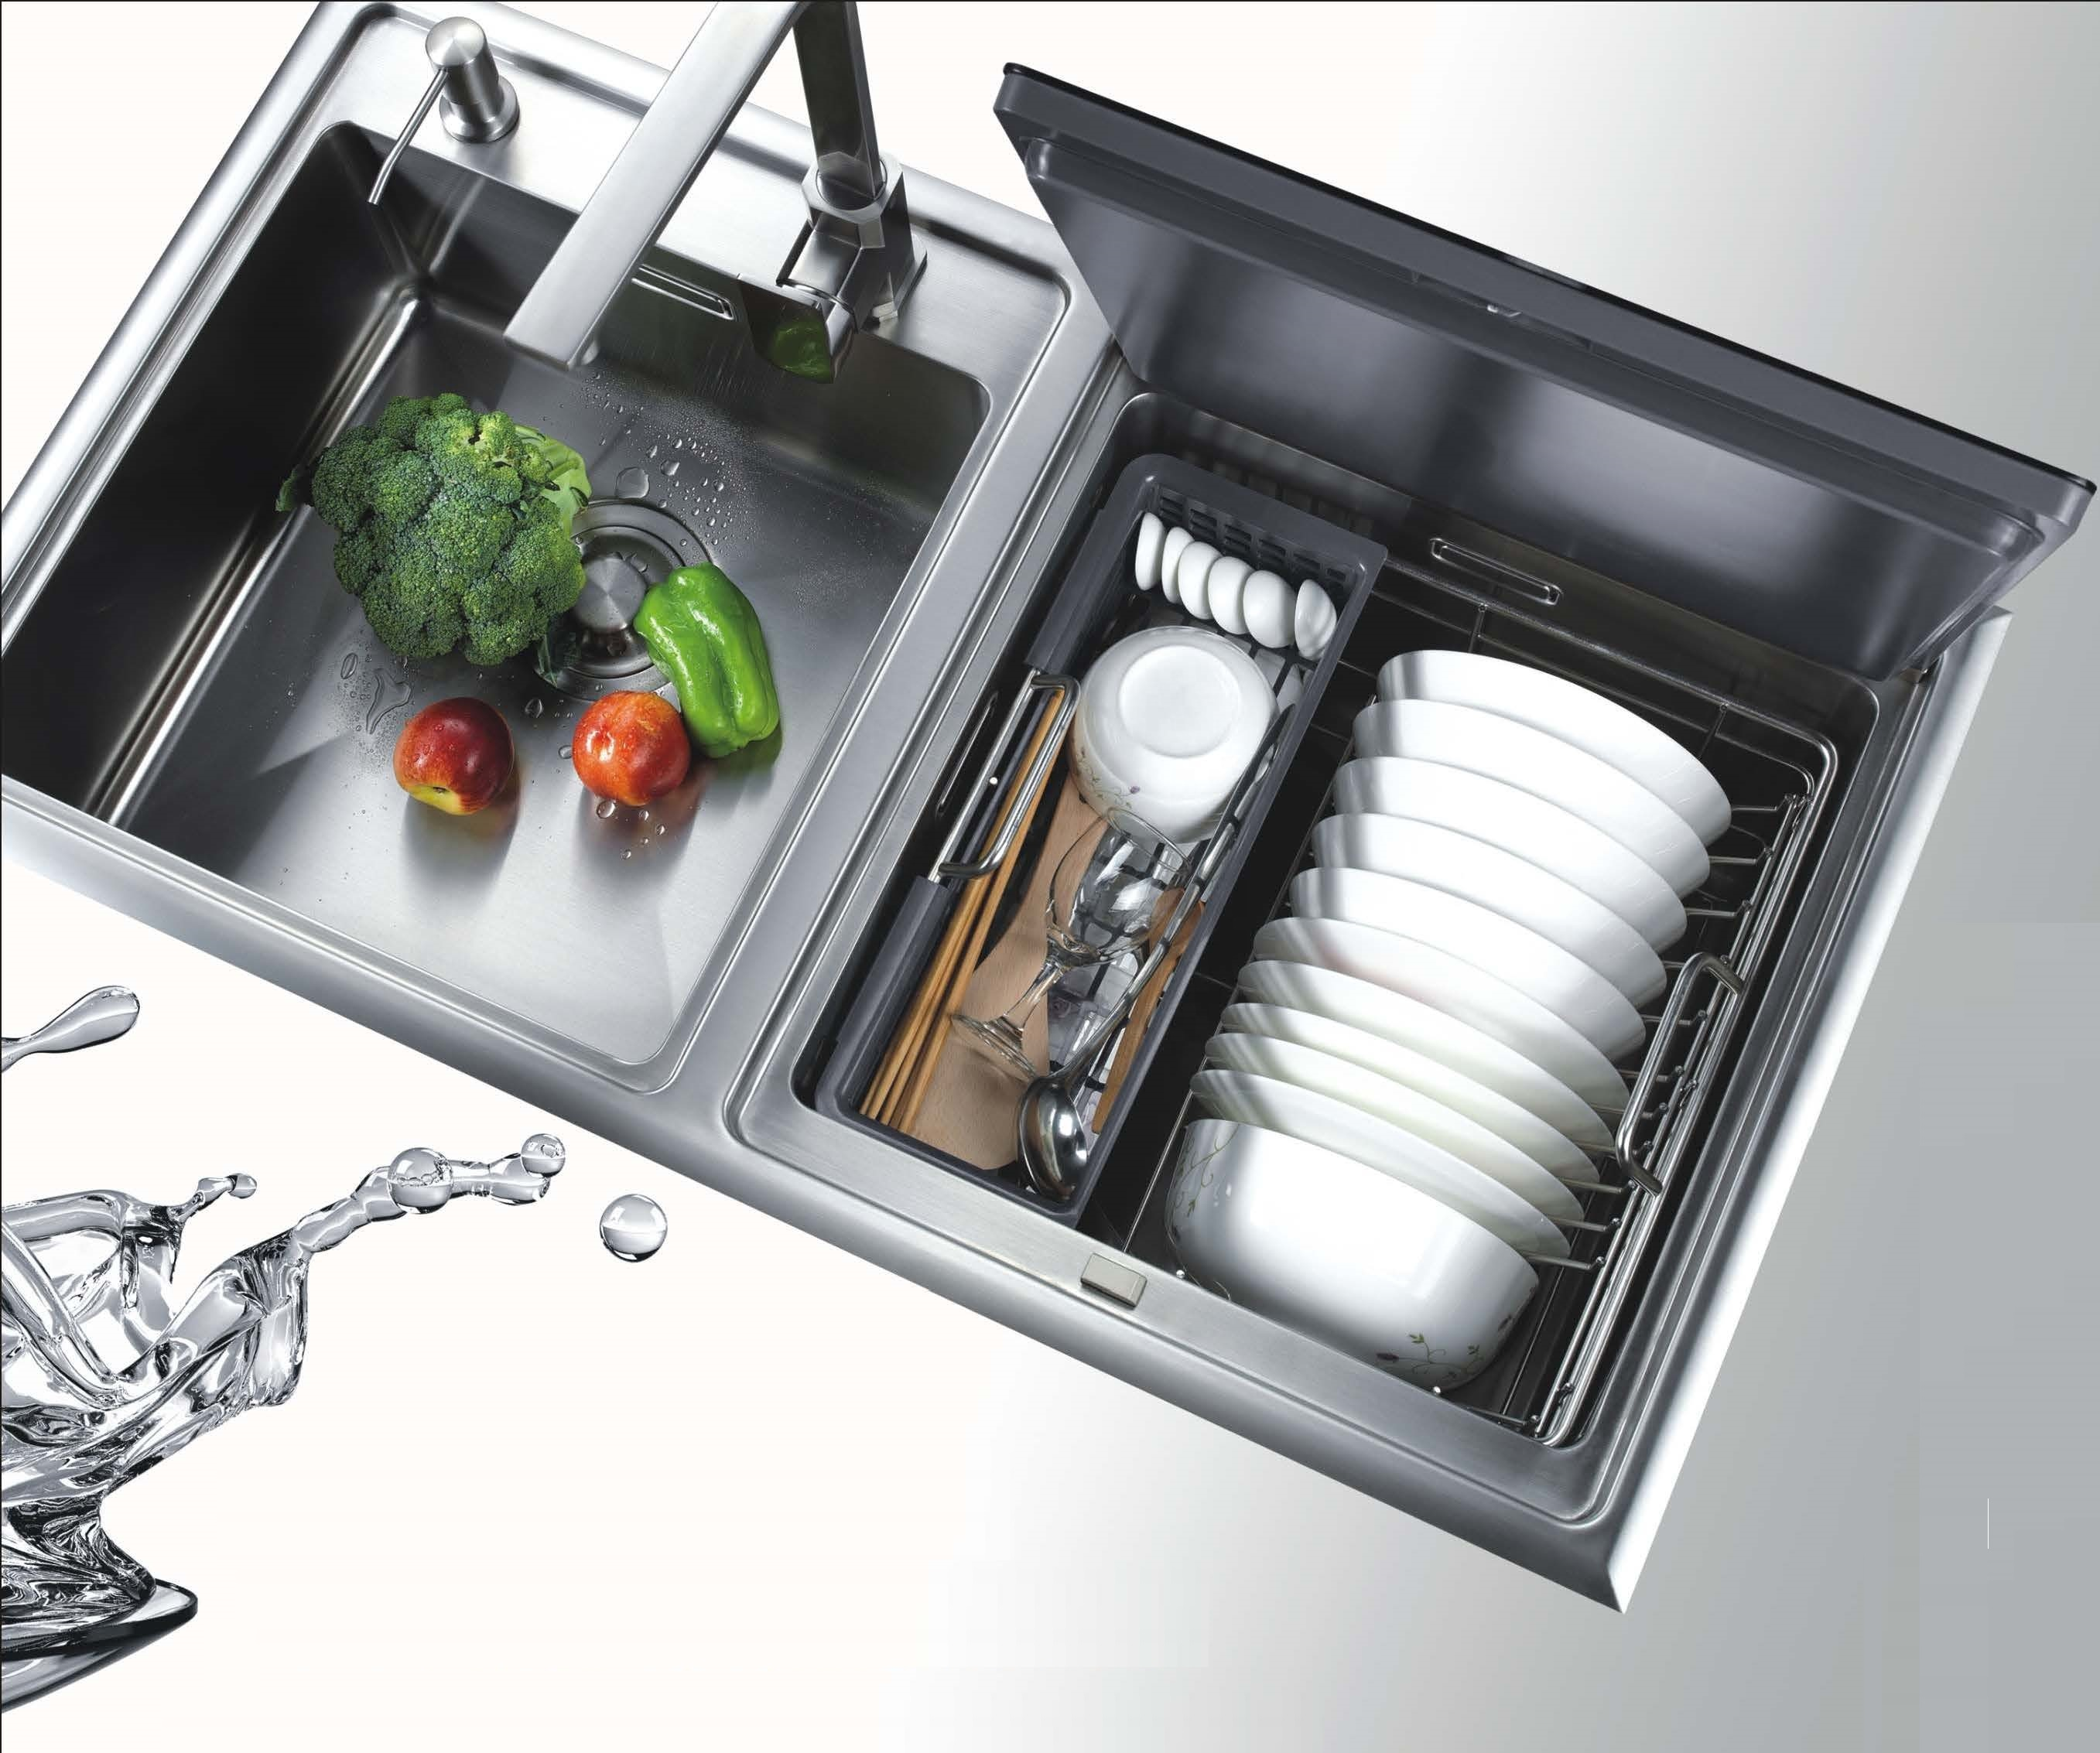 SENG kitchen appliance CE certified in sink dish washer machine for home